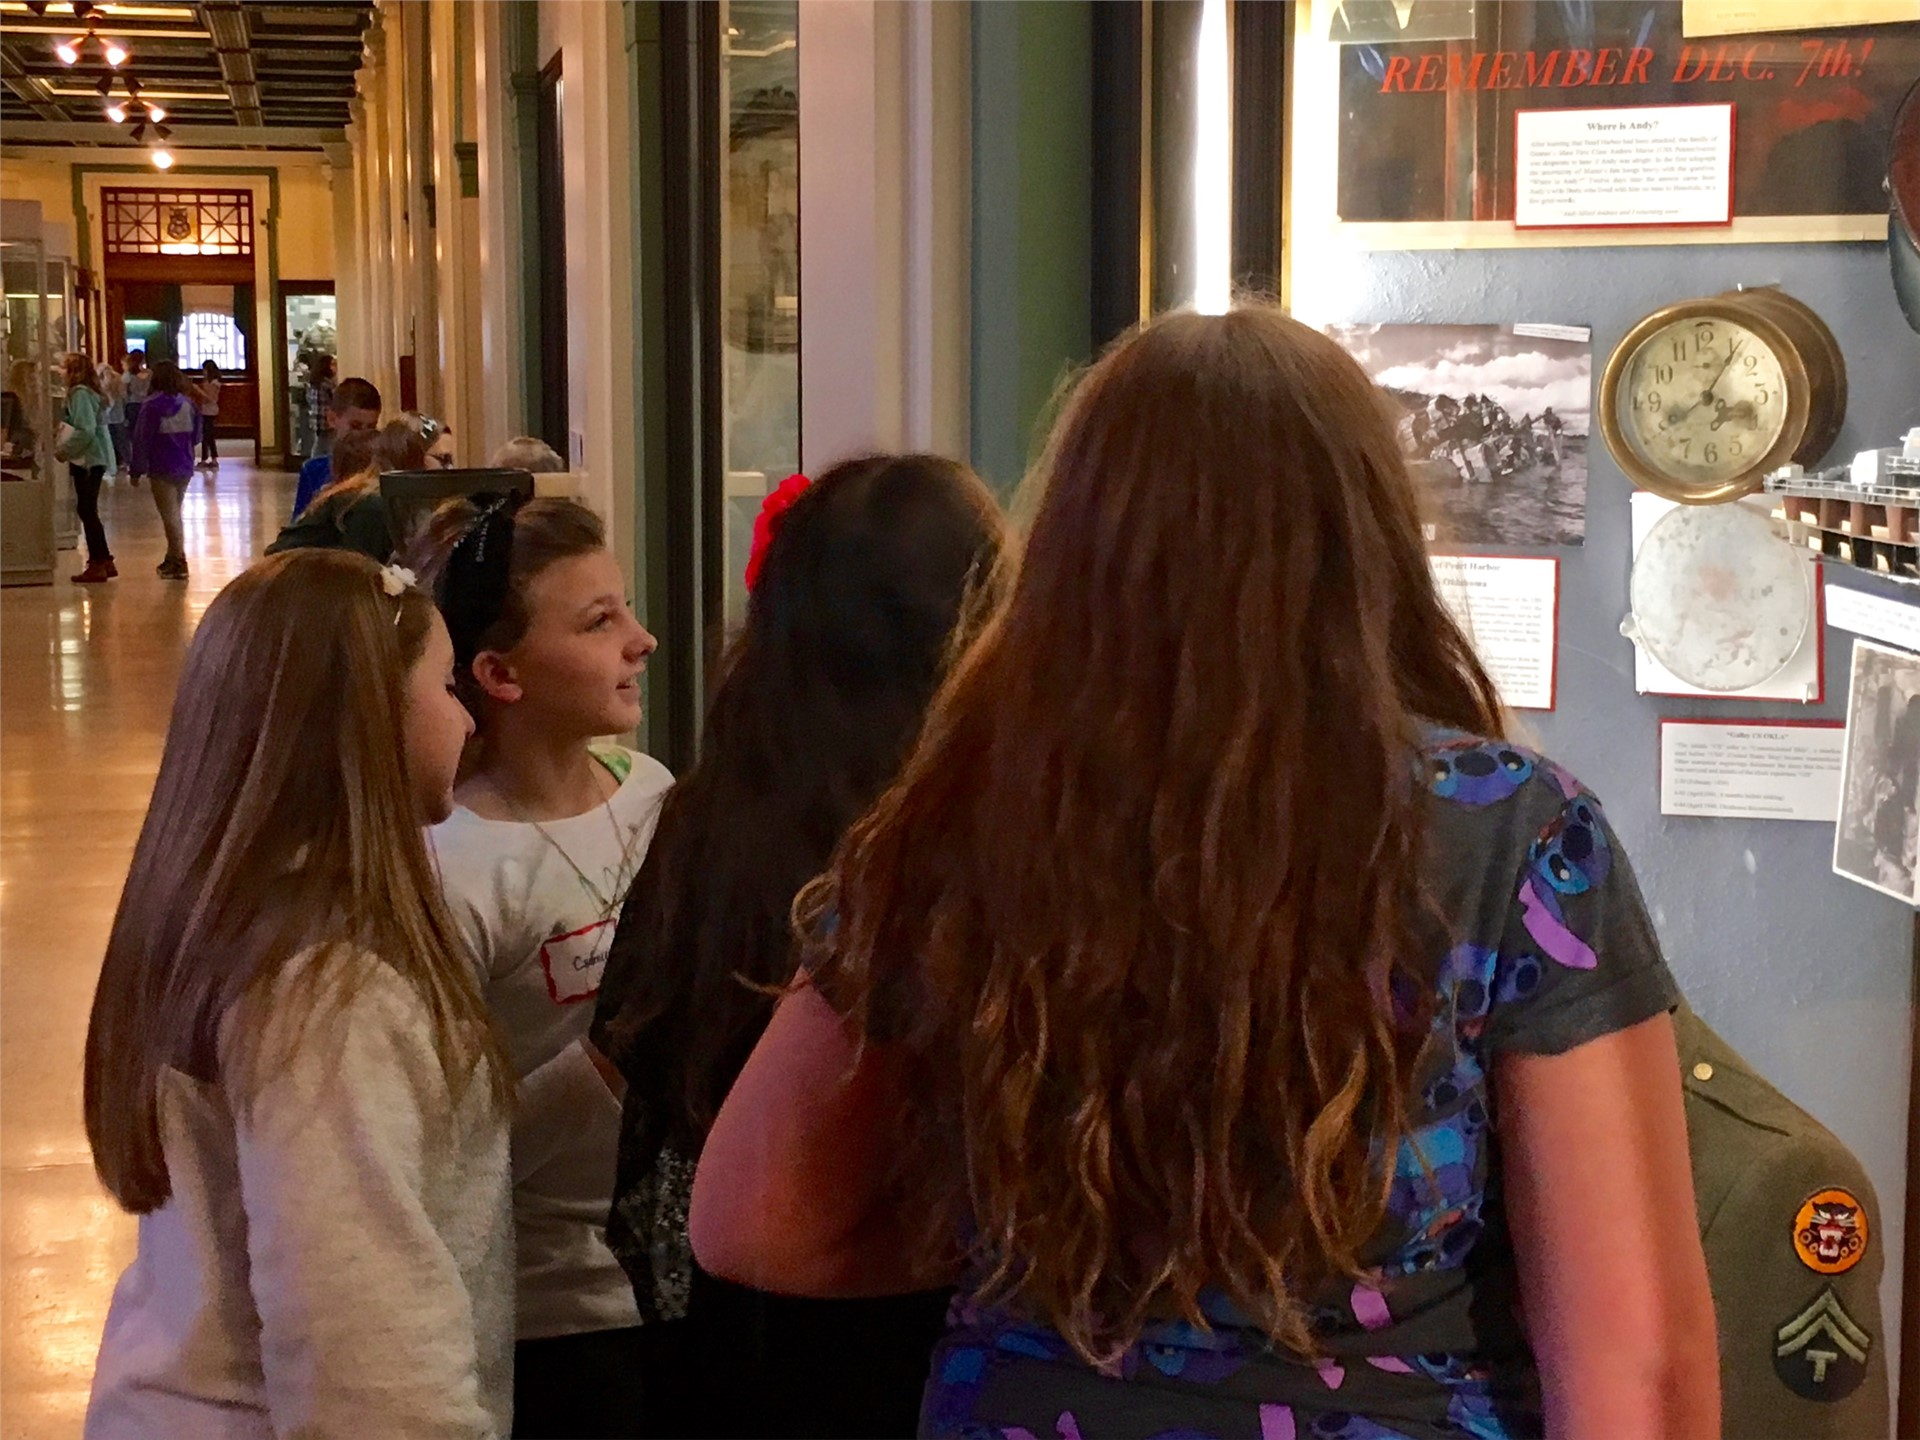 Fifth graders learn about WWII at Soldiers & Sailors Hall.